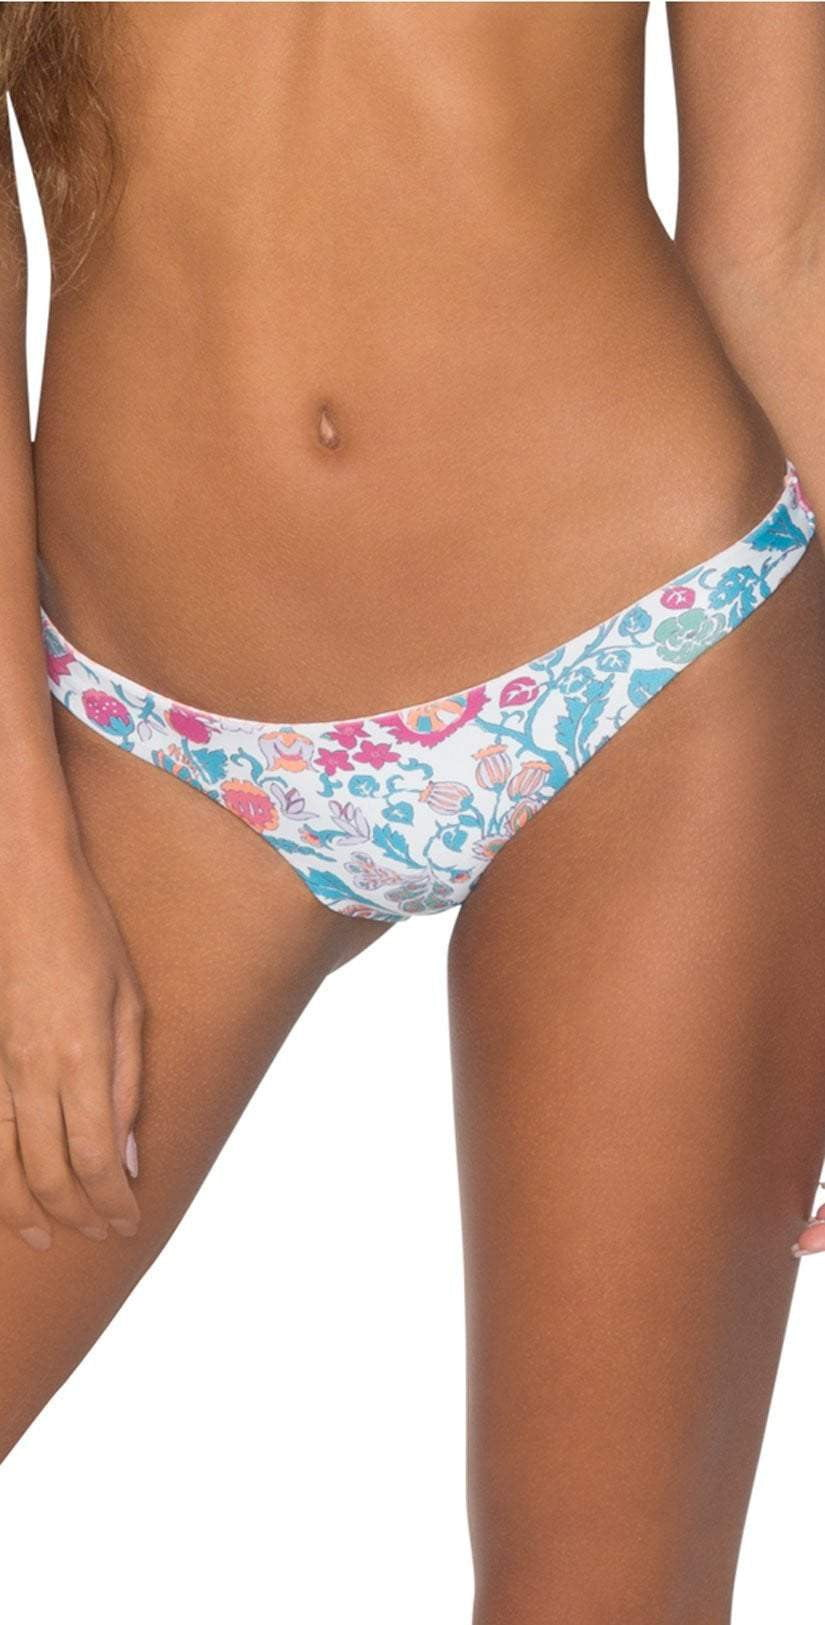 B. Swim Mele Blossom White Hampton Flip Reversible Bikini Bottom front view bottom only